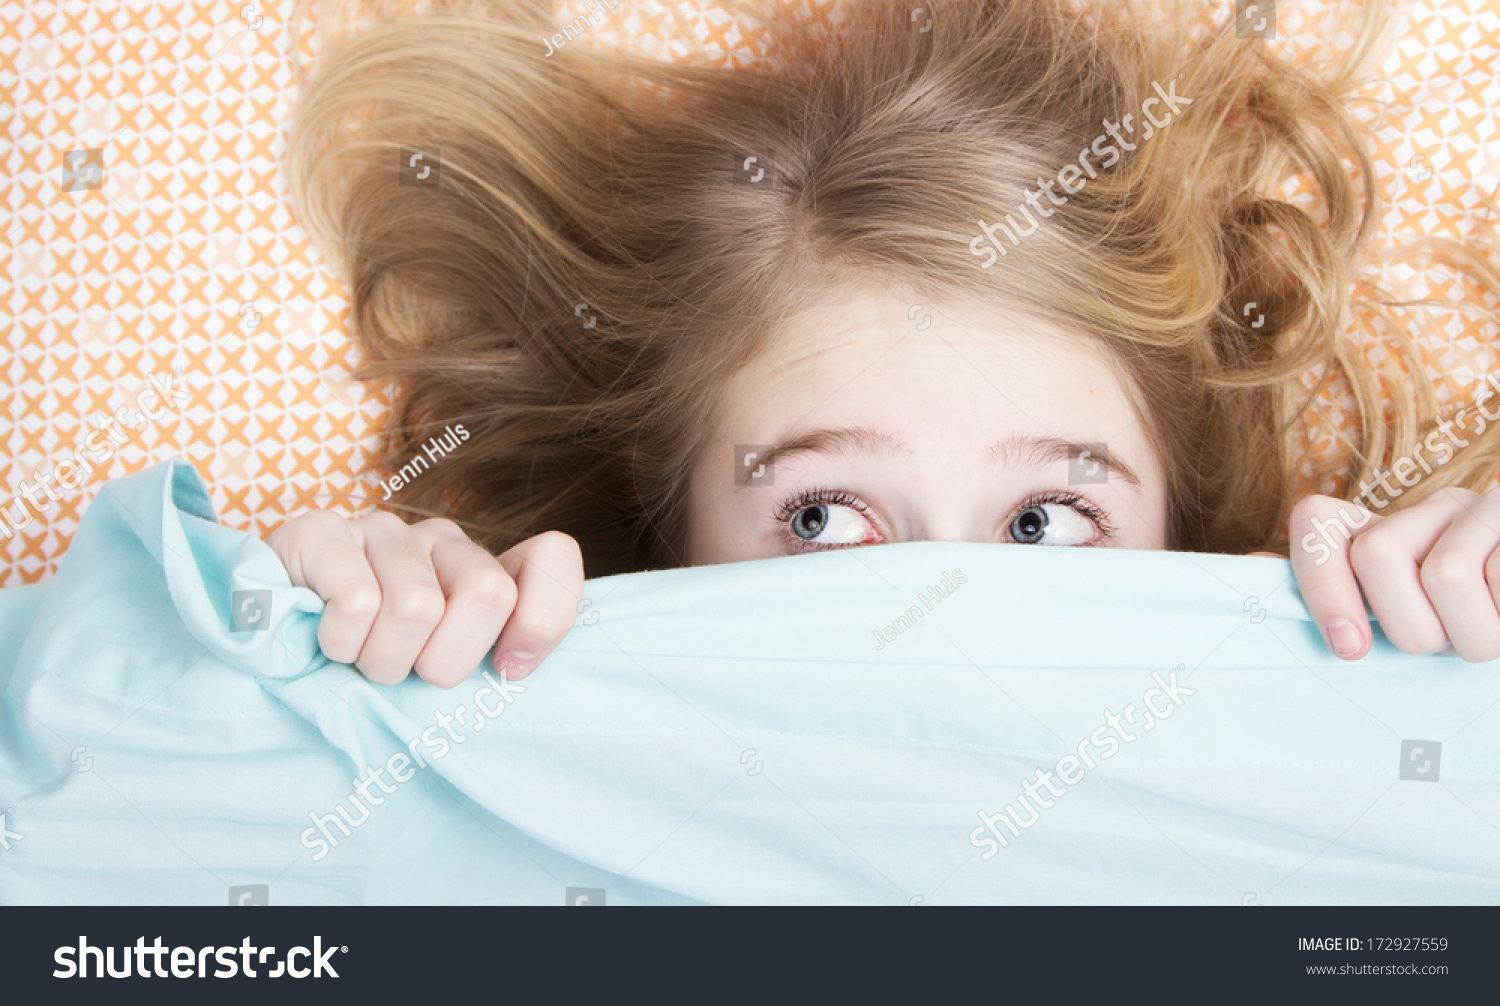 Child or teen hiding under covers in bed #172927559